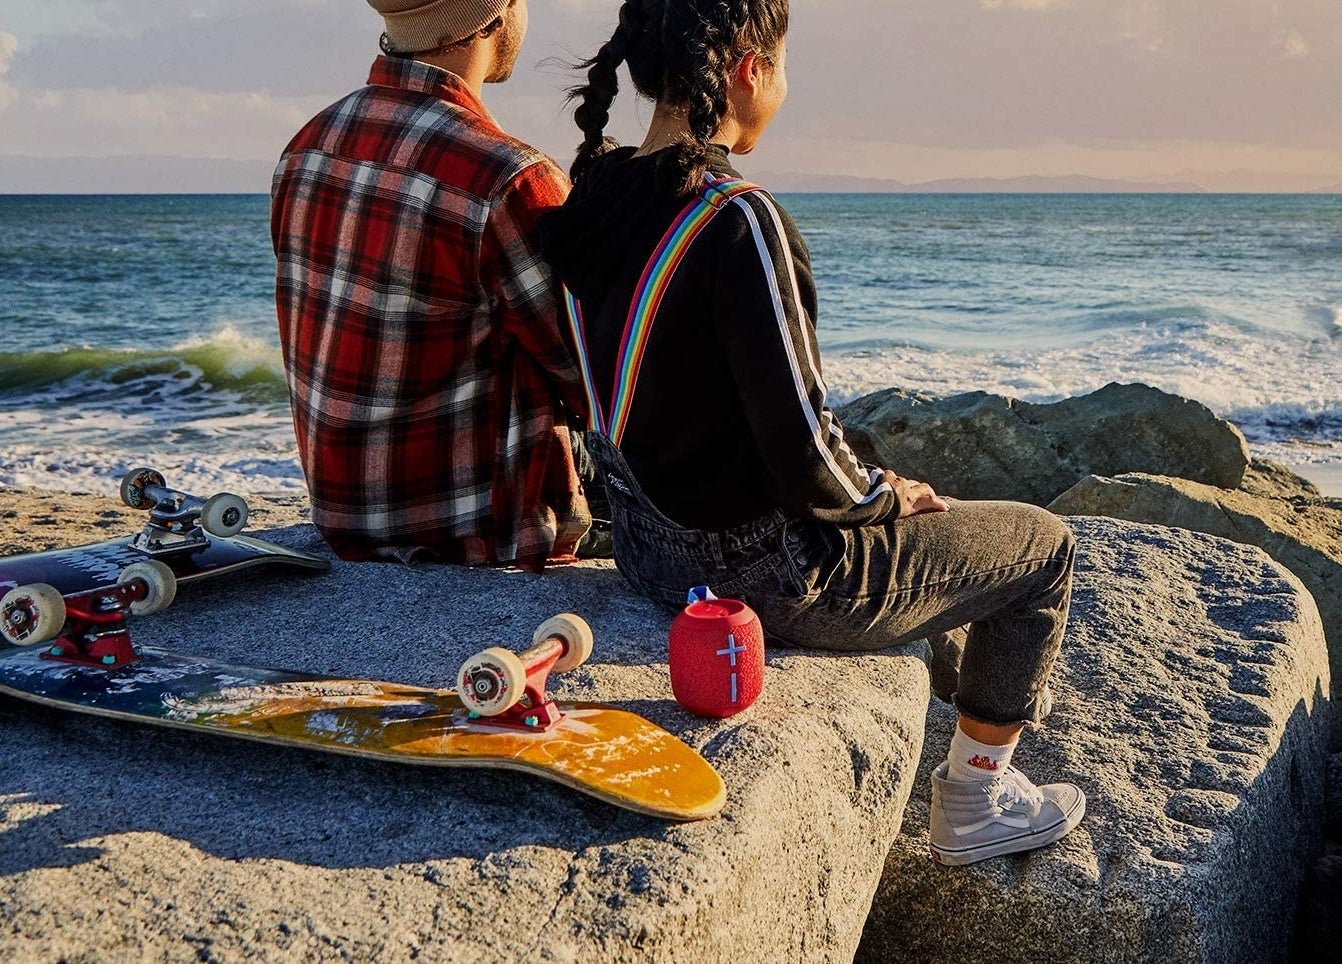 Two people sitting on rocks near a beach with a small speaker behind them